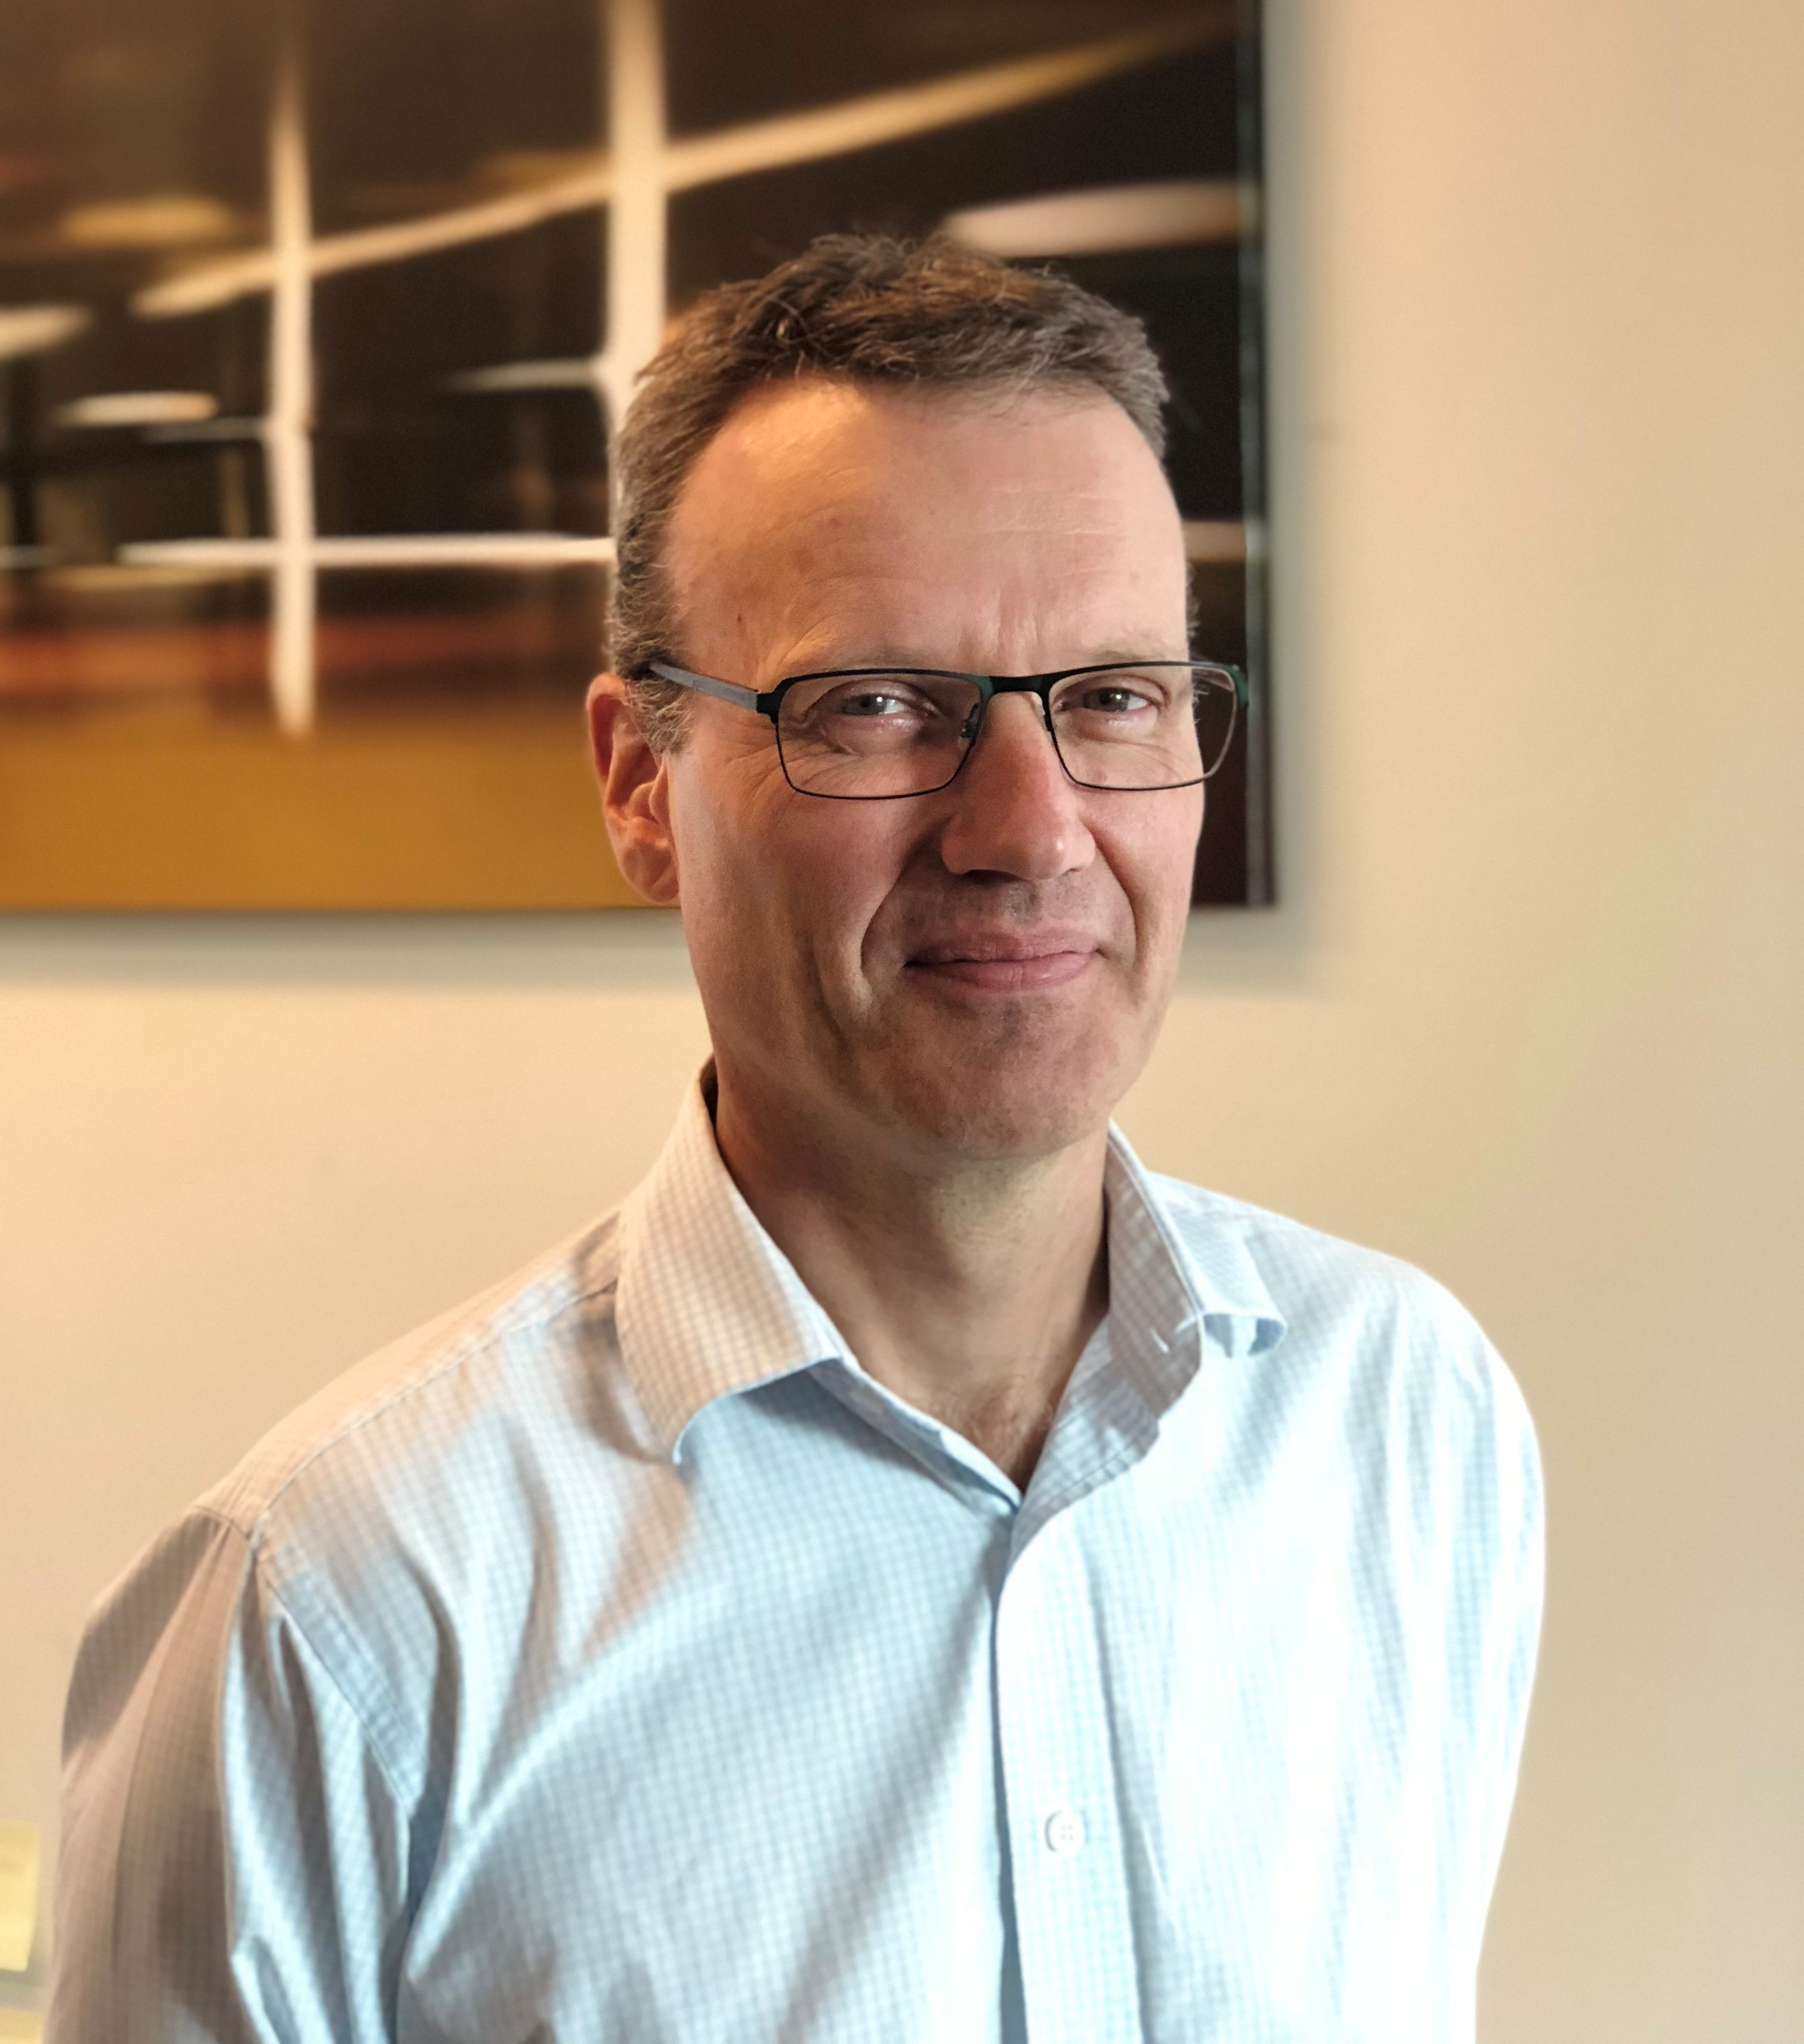 Dr Rodney Thomson has over 18 years research and development experience in the design and analysis of composite structures for aerospace, maritime, automotive and oil & gas applications.